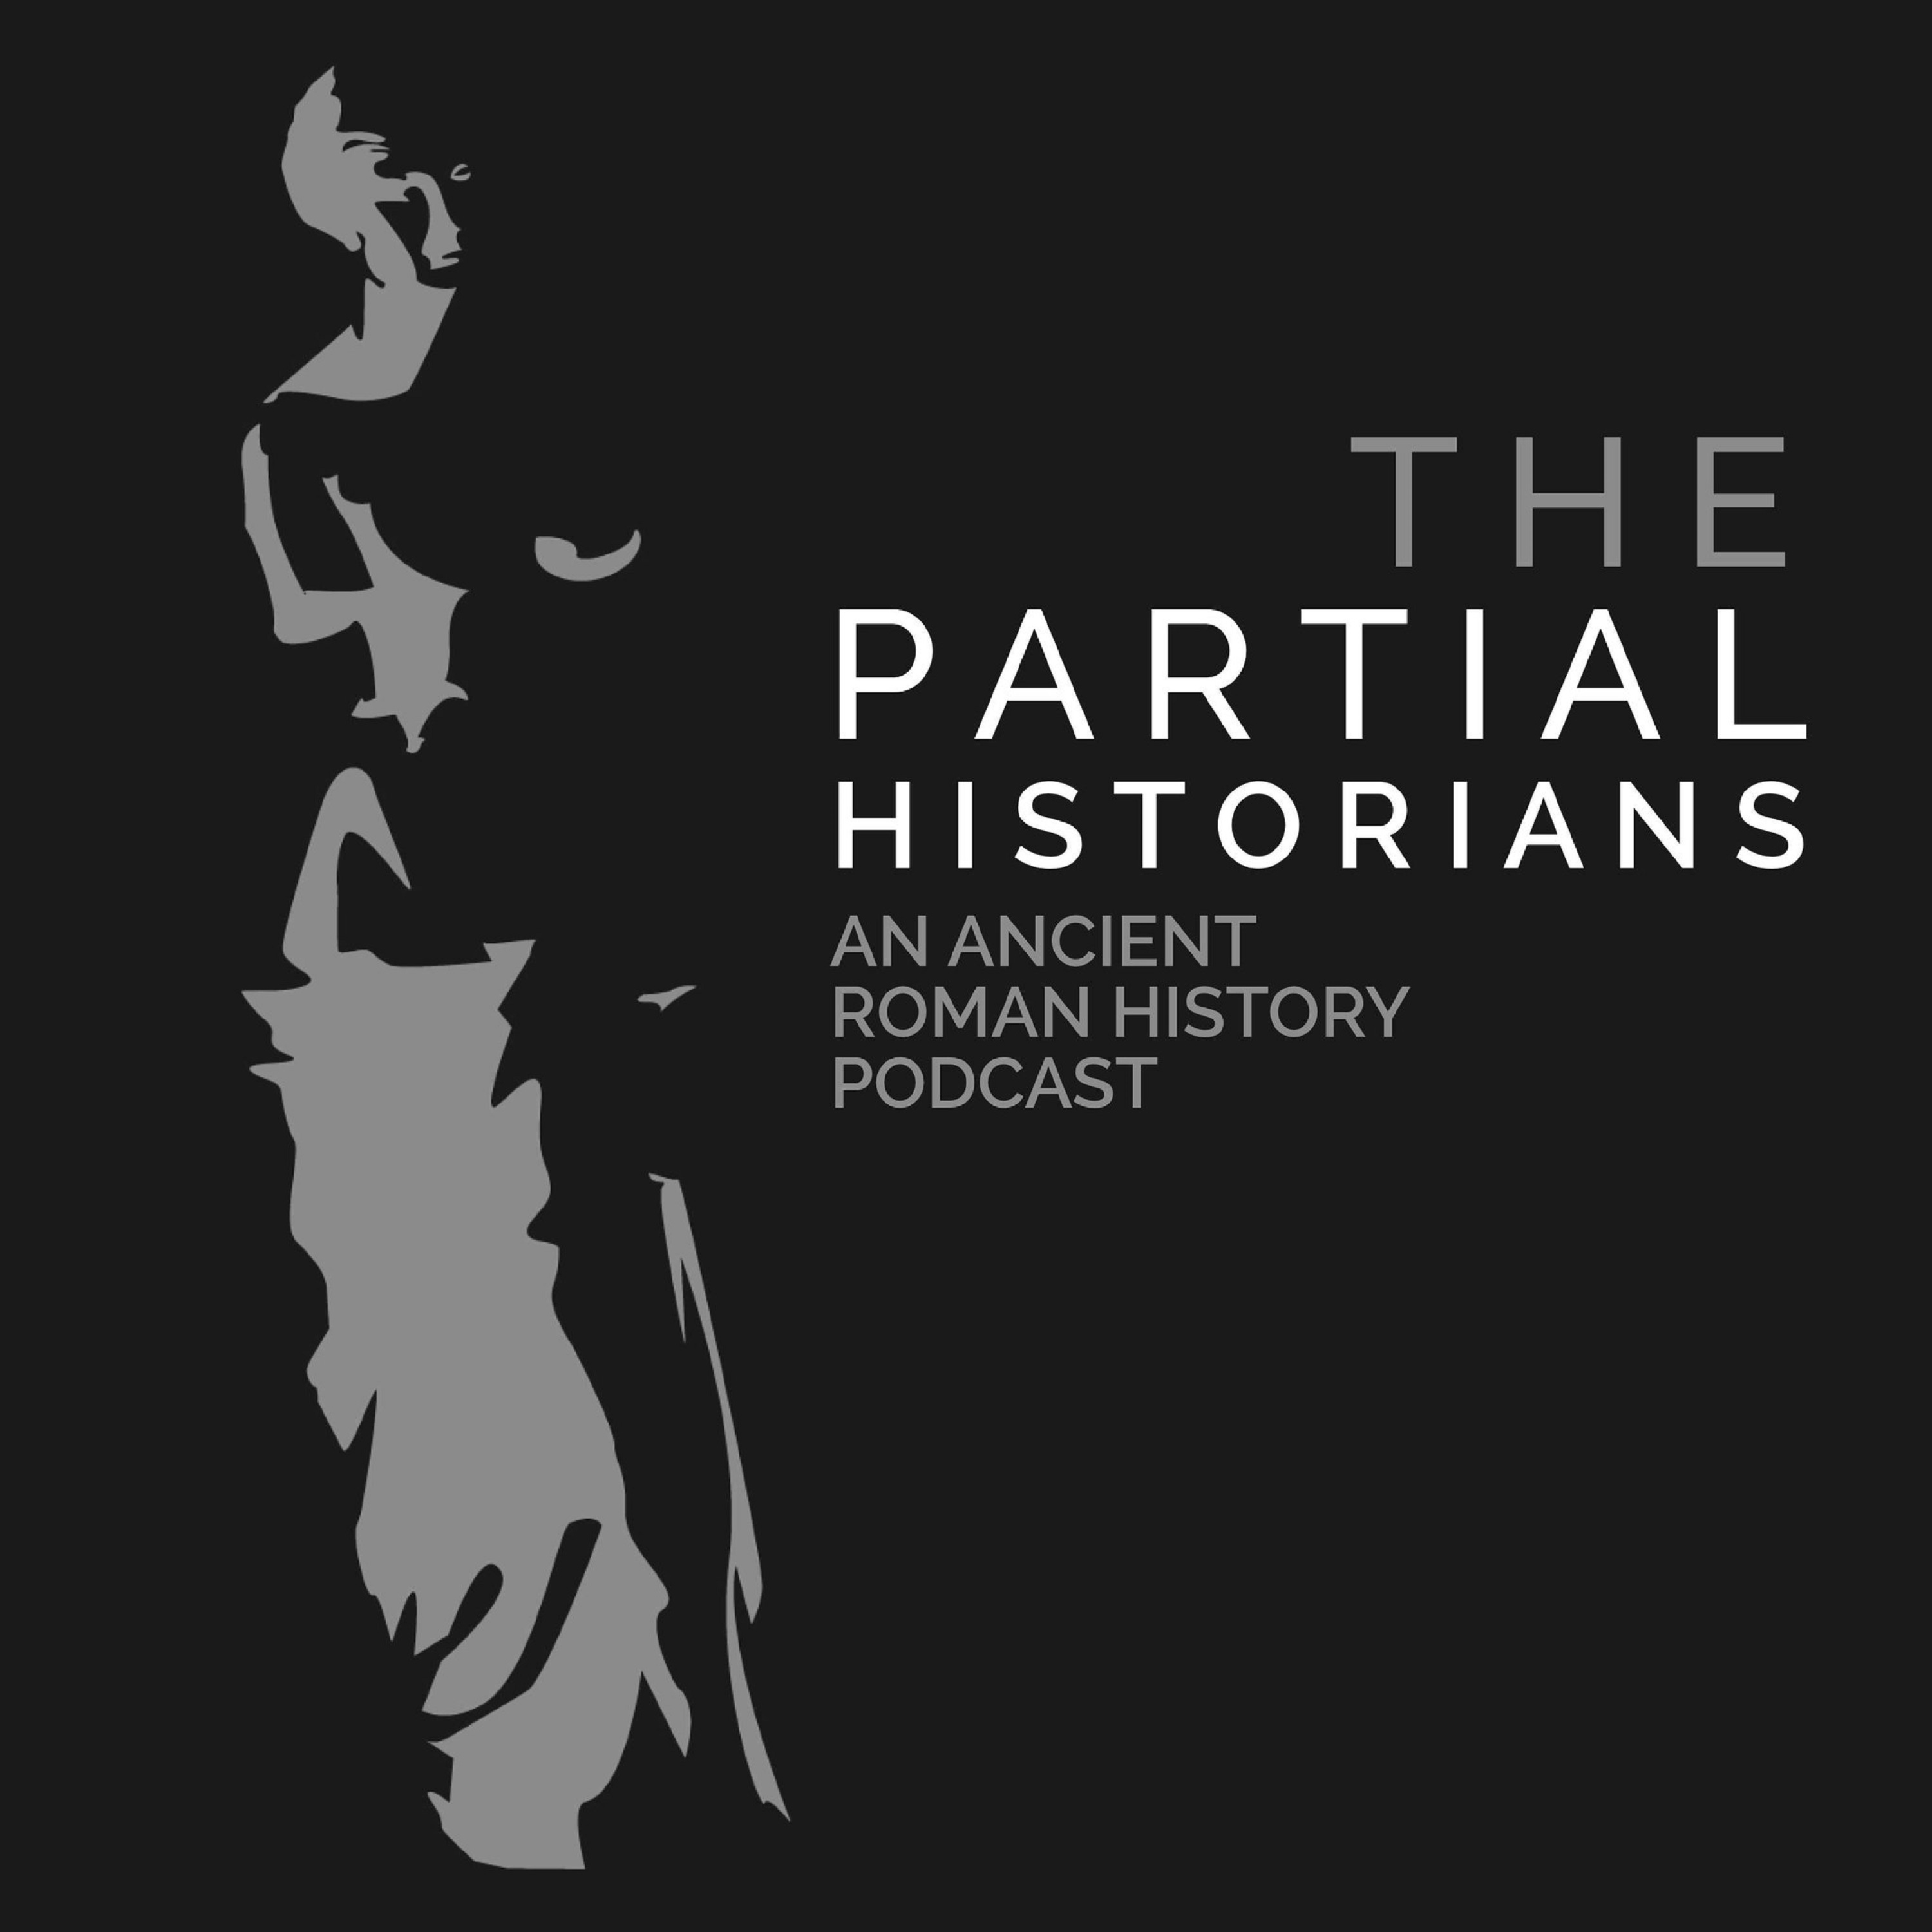 Podcast – The Partial Historians